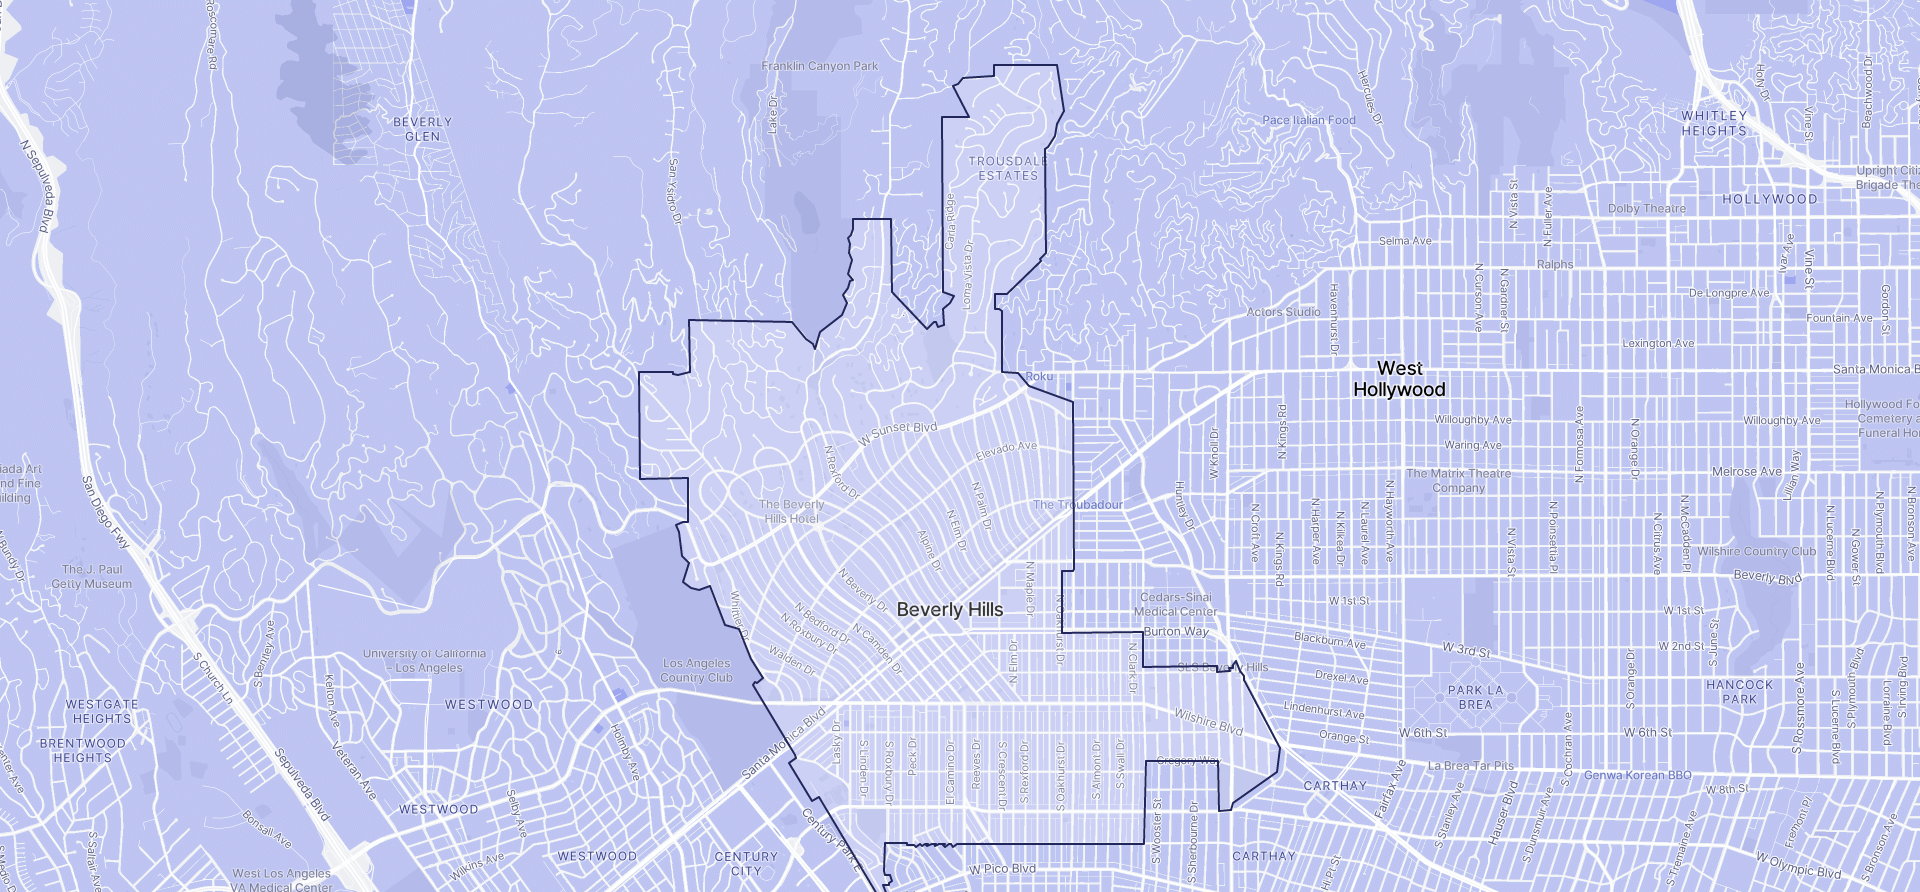 Image of Beverly Hills boundaries on a map.